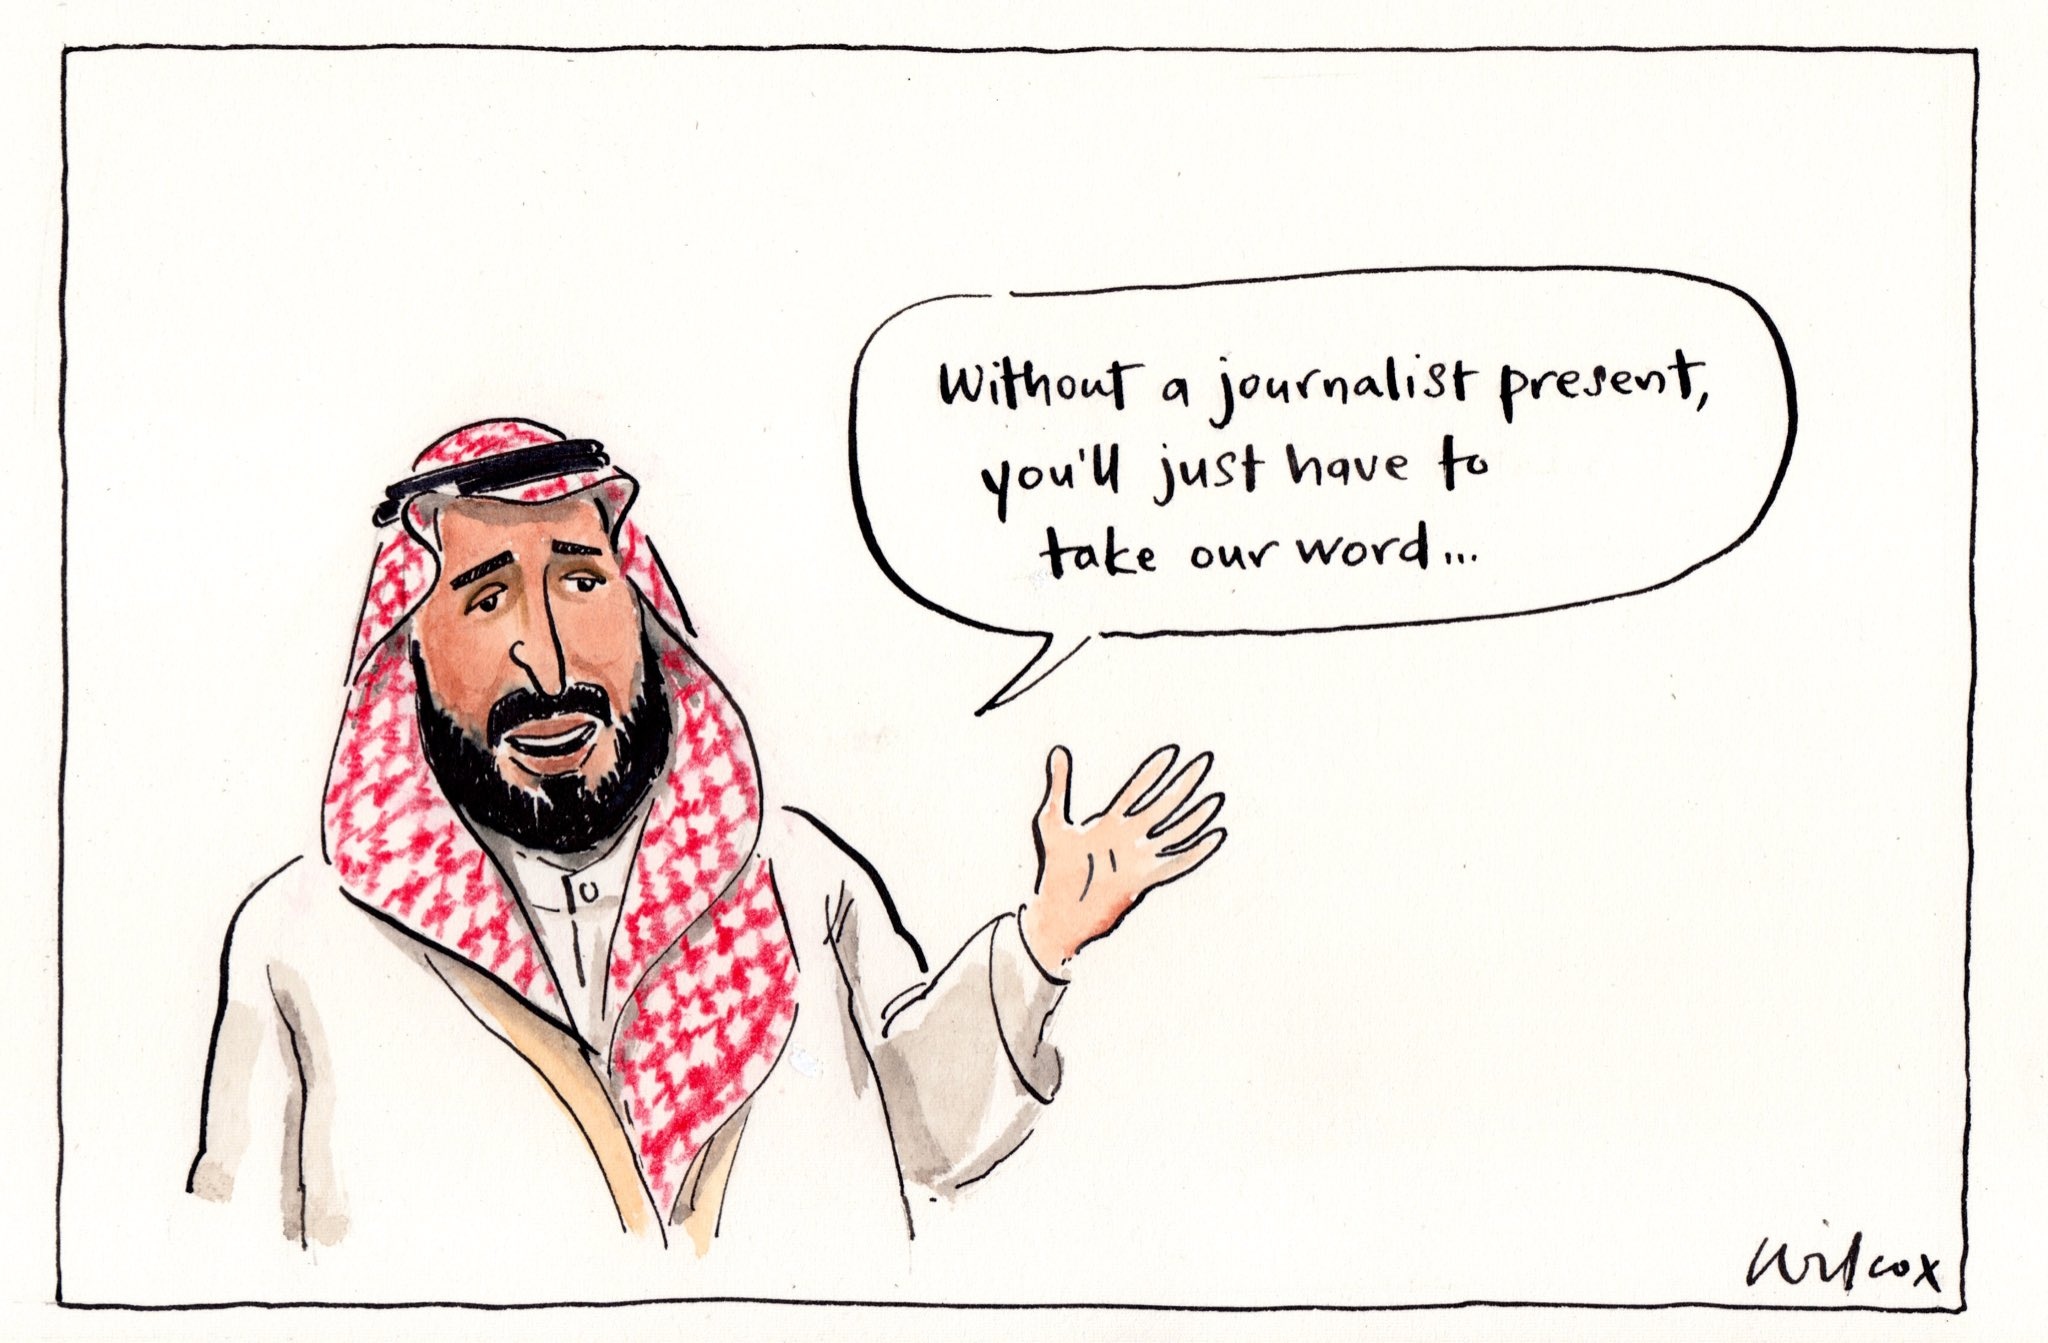 cathywilcox1_2018-Oct-25.jpg